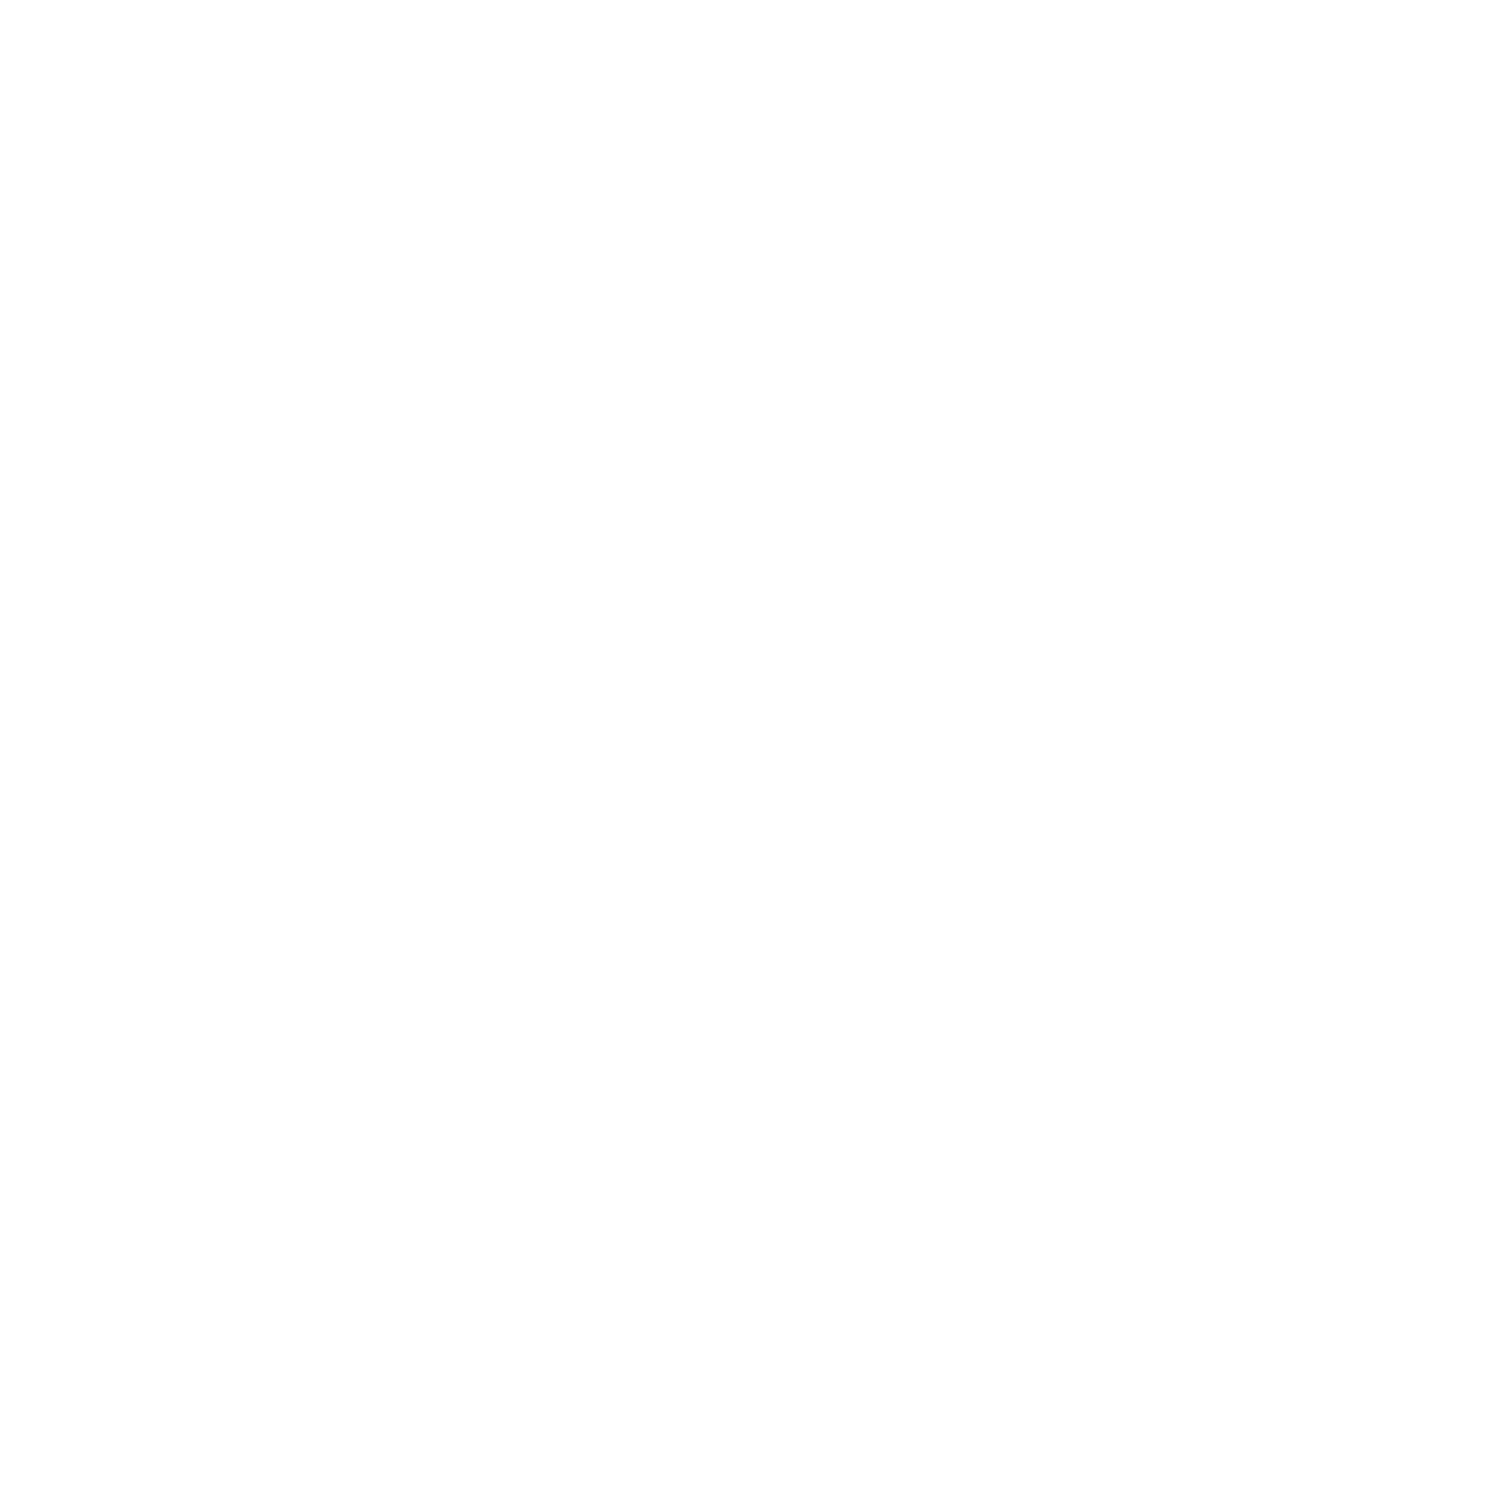 Eventful-Photobooths.com